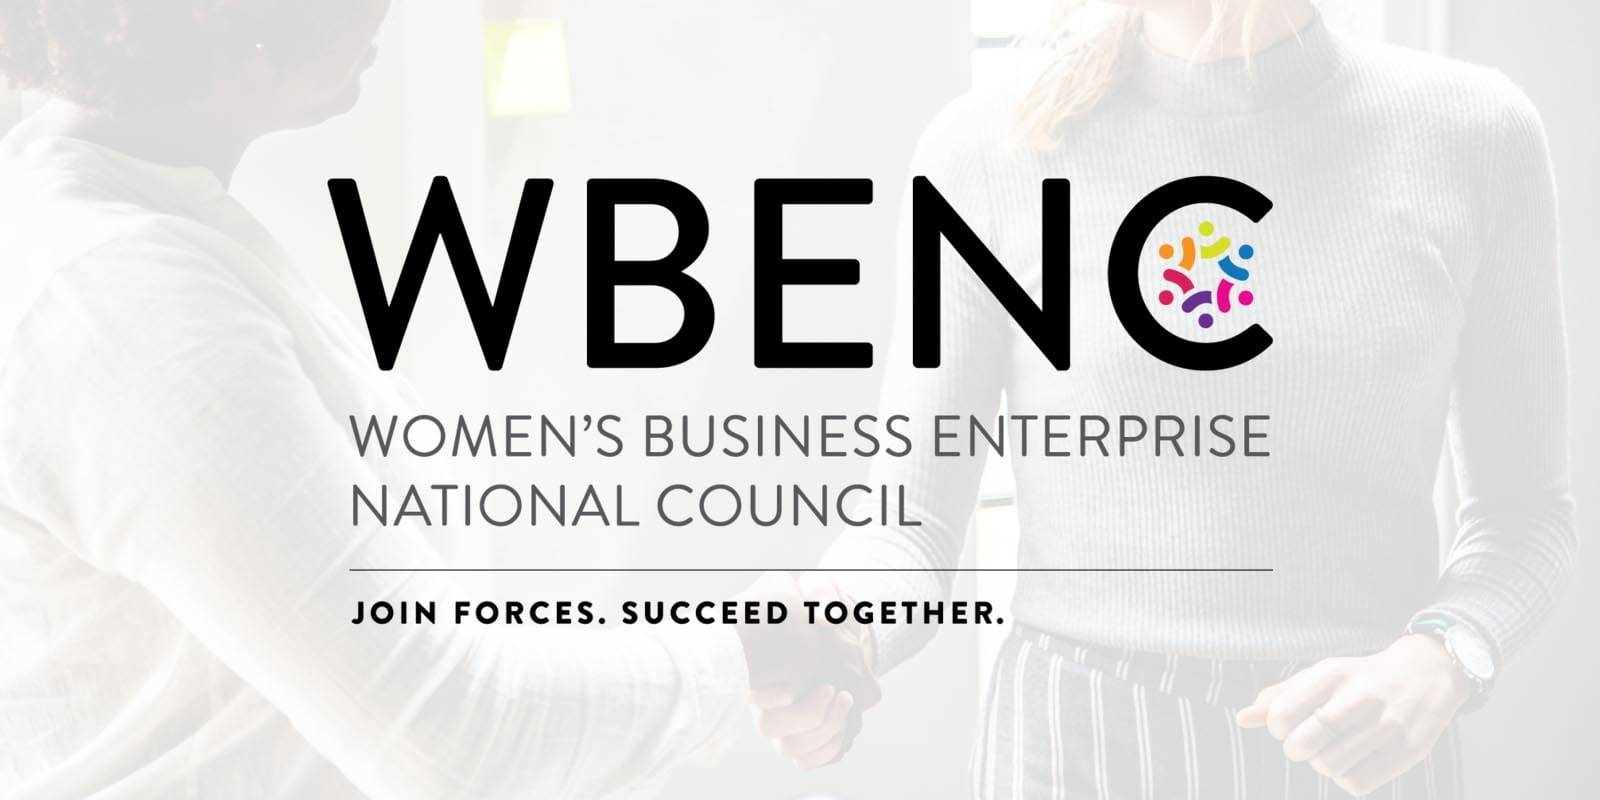 two women shaking hands in a business setting. WBENC logo overlays the image.